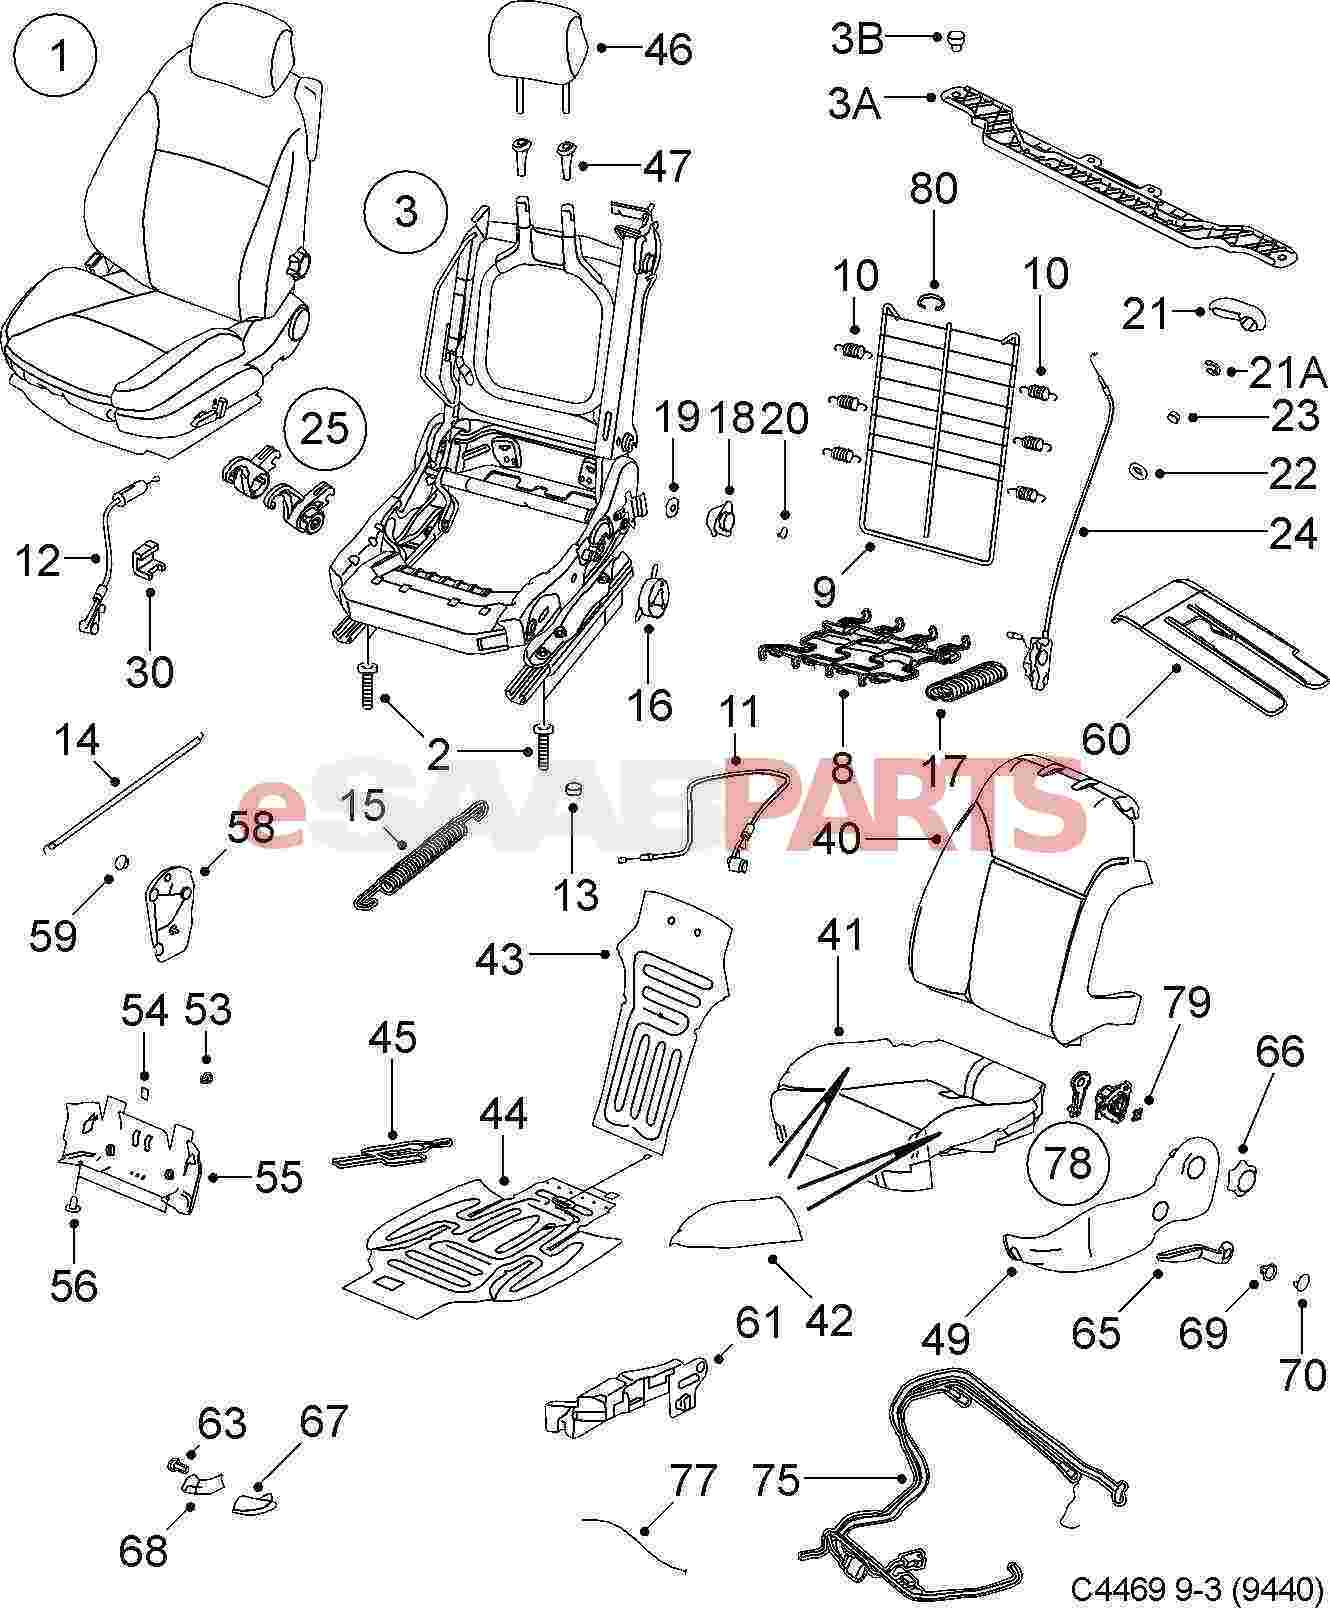 12791602 saab seat position sensor airbag seat rail genuine rh esaabparts com saab parts diagram online saab parts diagram 9-5